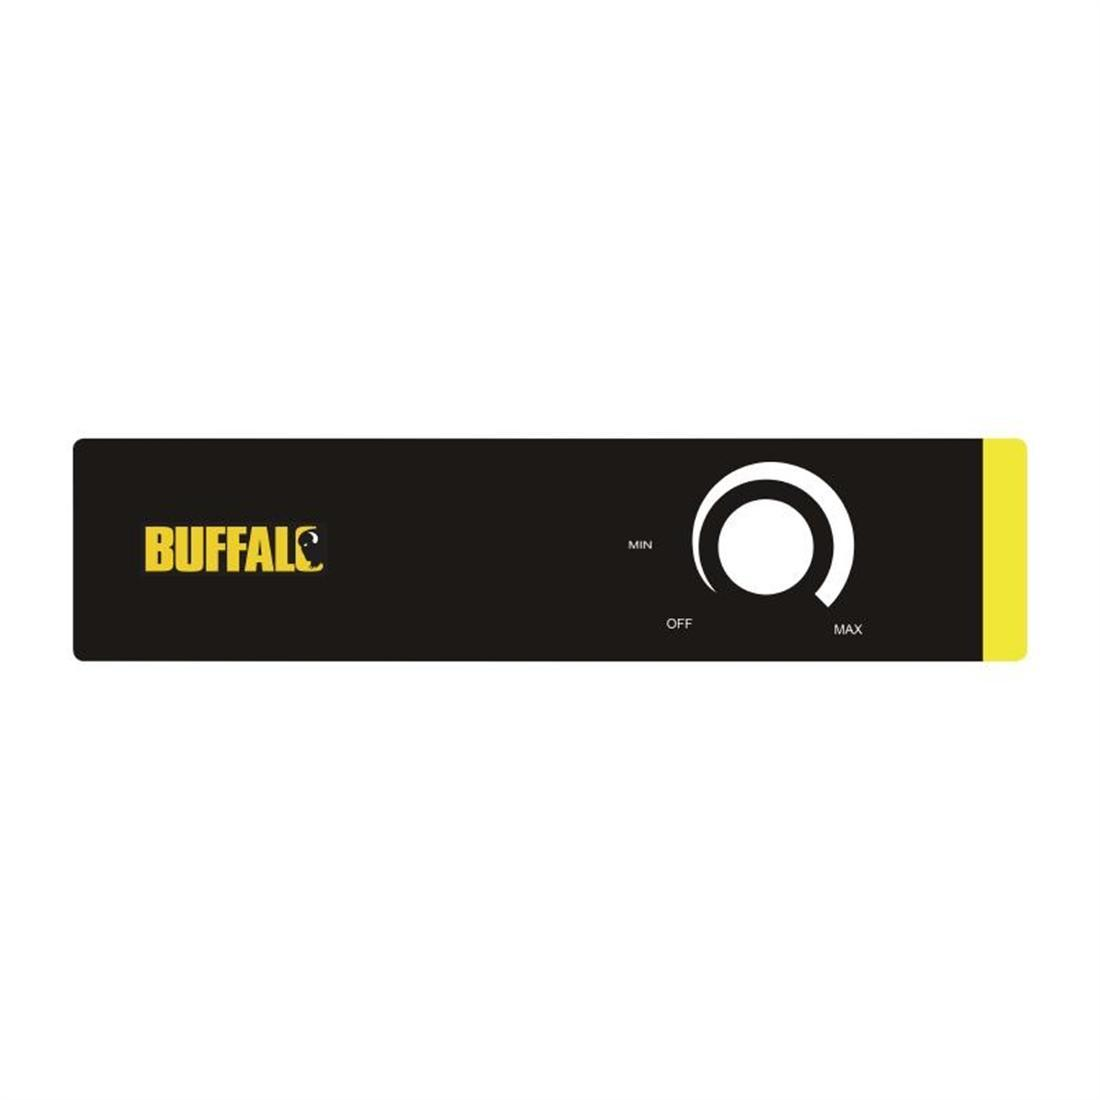 Buffalo Control Panel Sticker - AD156